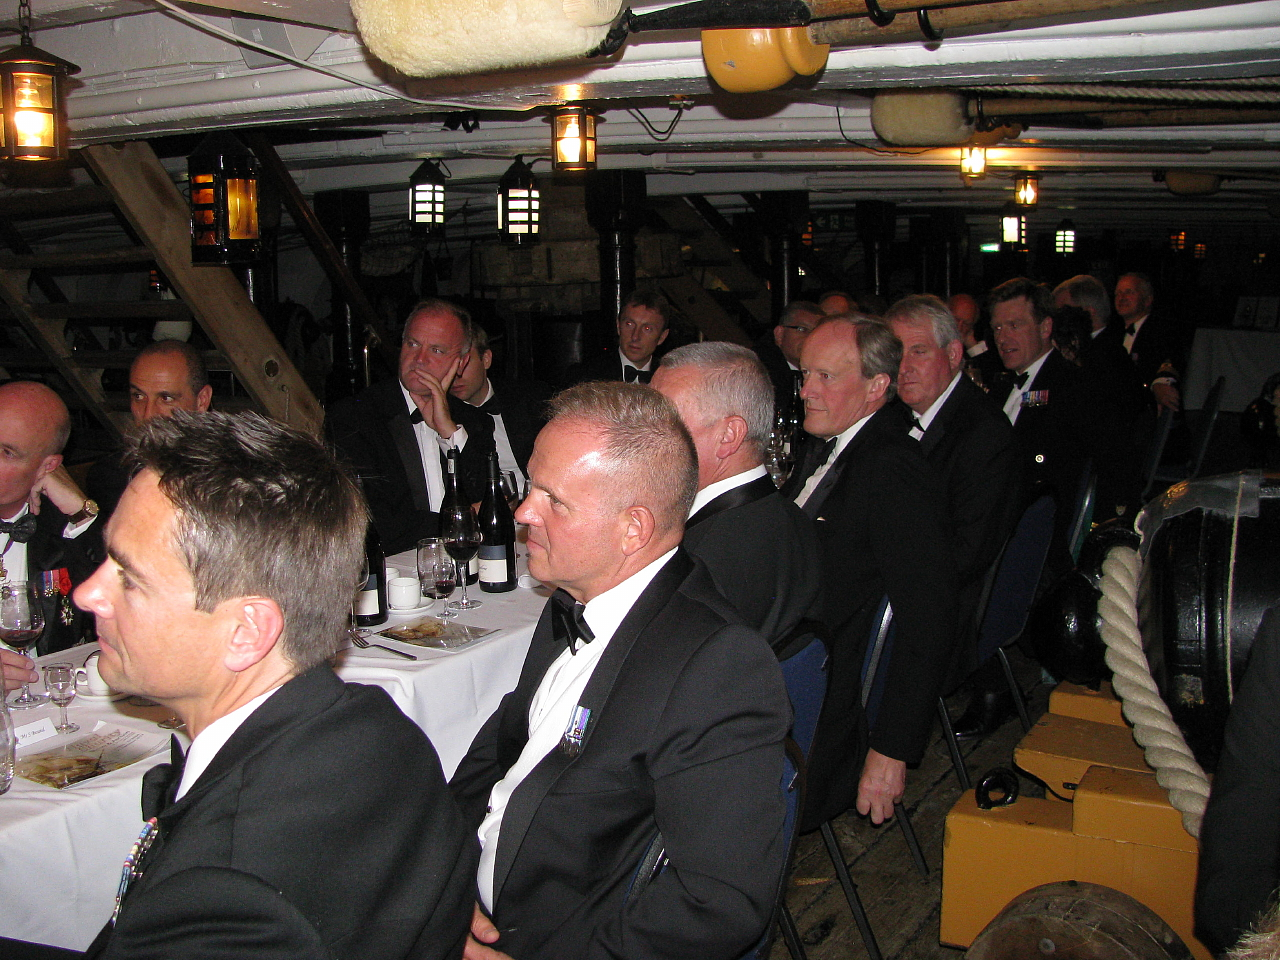 Project Vernon charity dinner on board HMS Victory 11 Sep 2014 (83).jpg